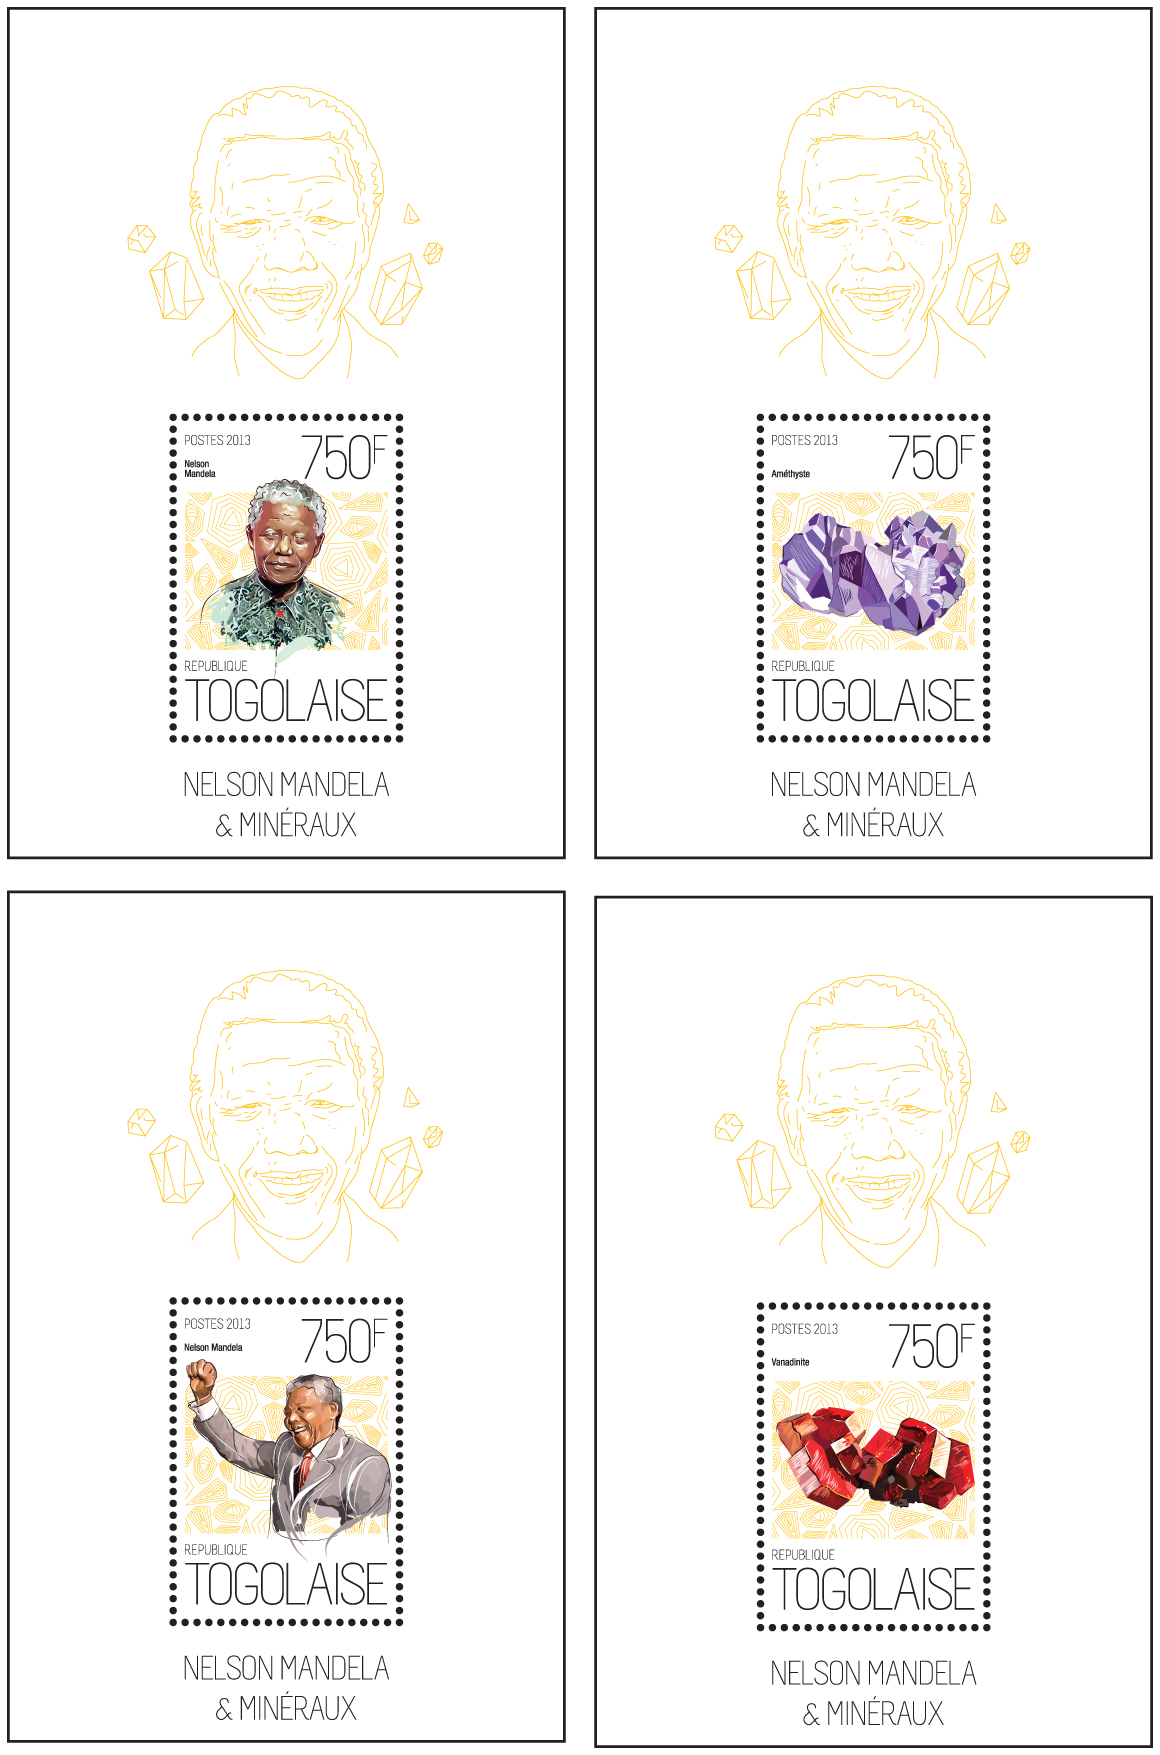 Nelson Mandela and Minerals - Issue of Togo postage stamps